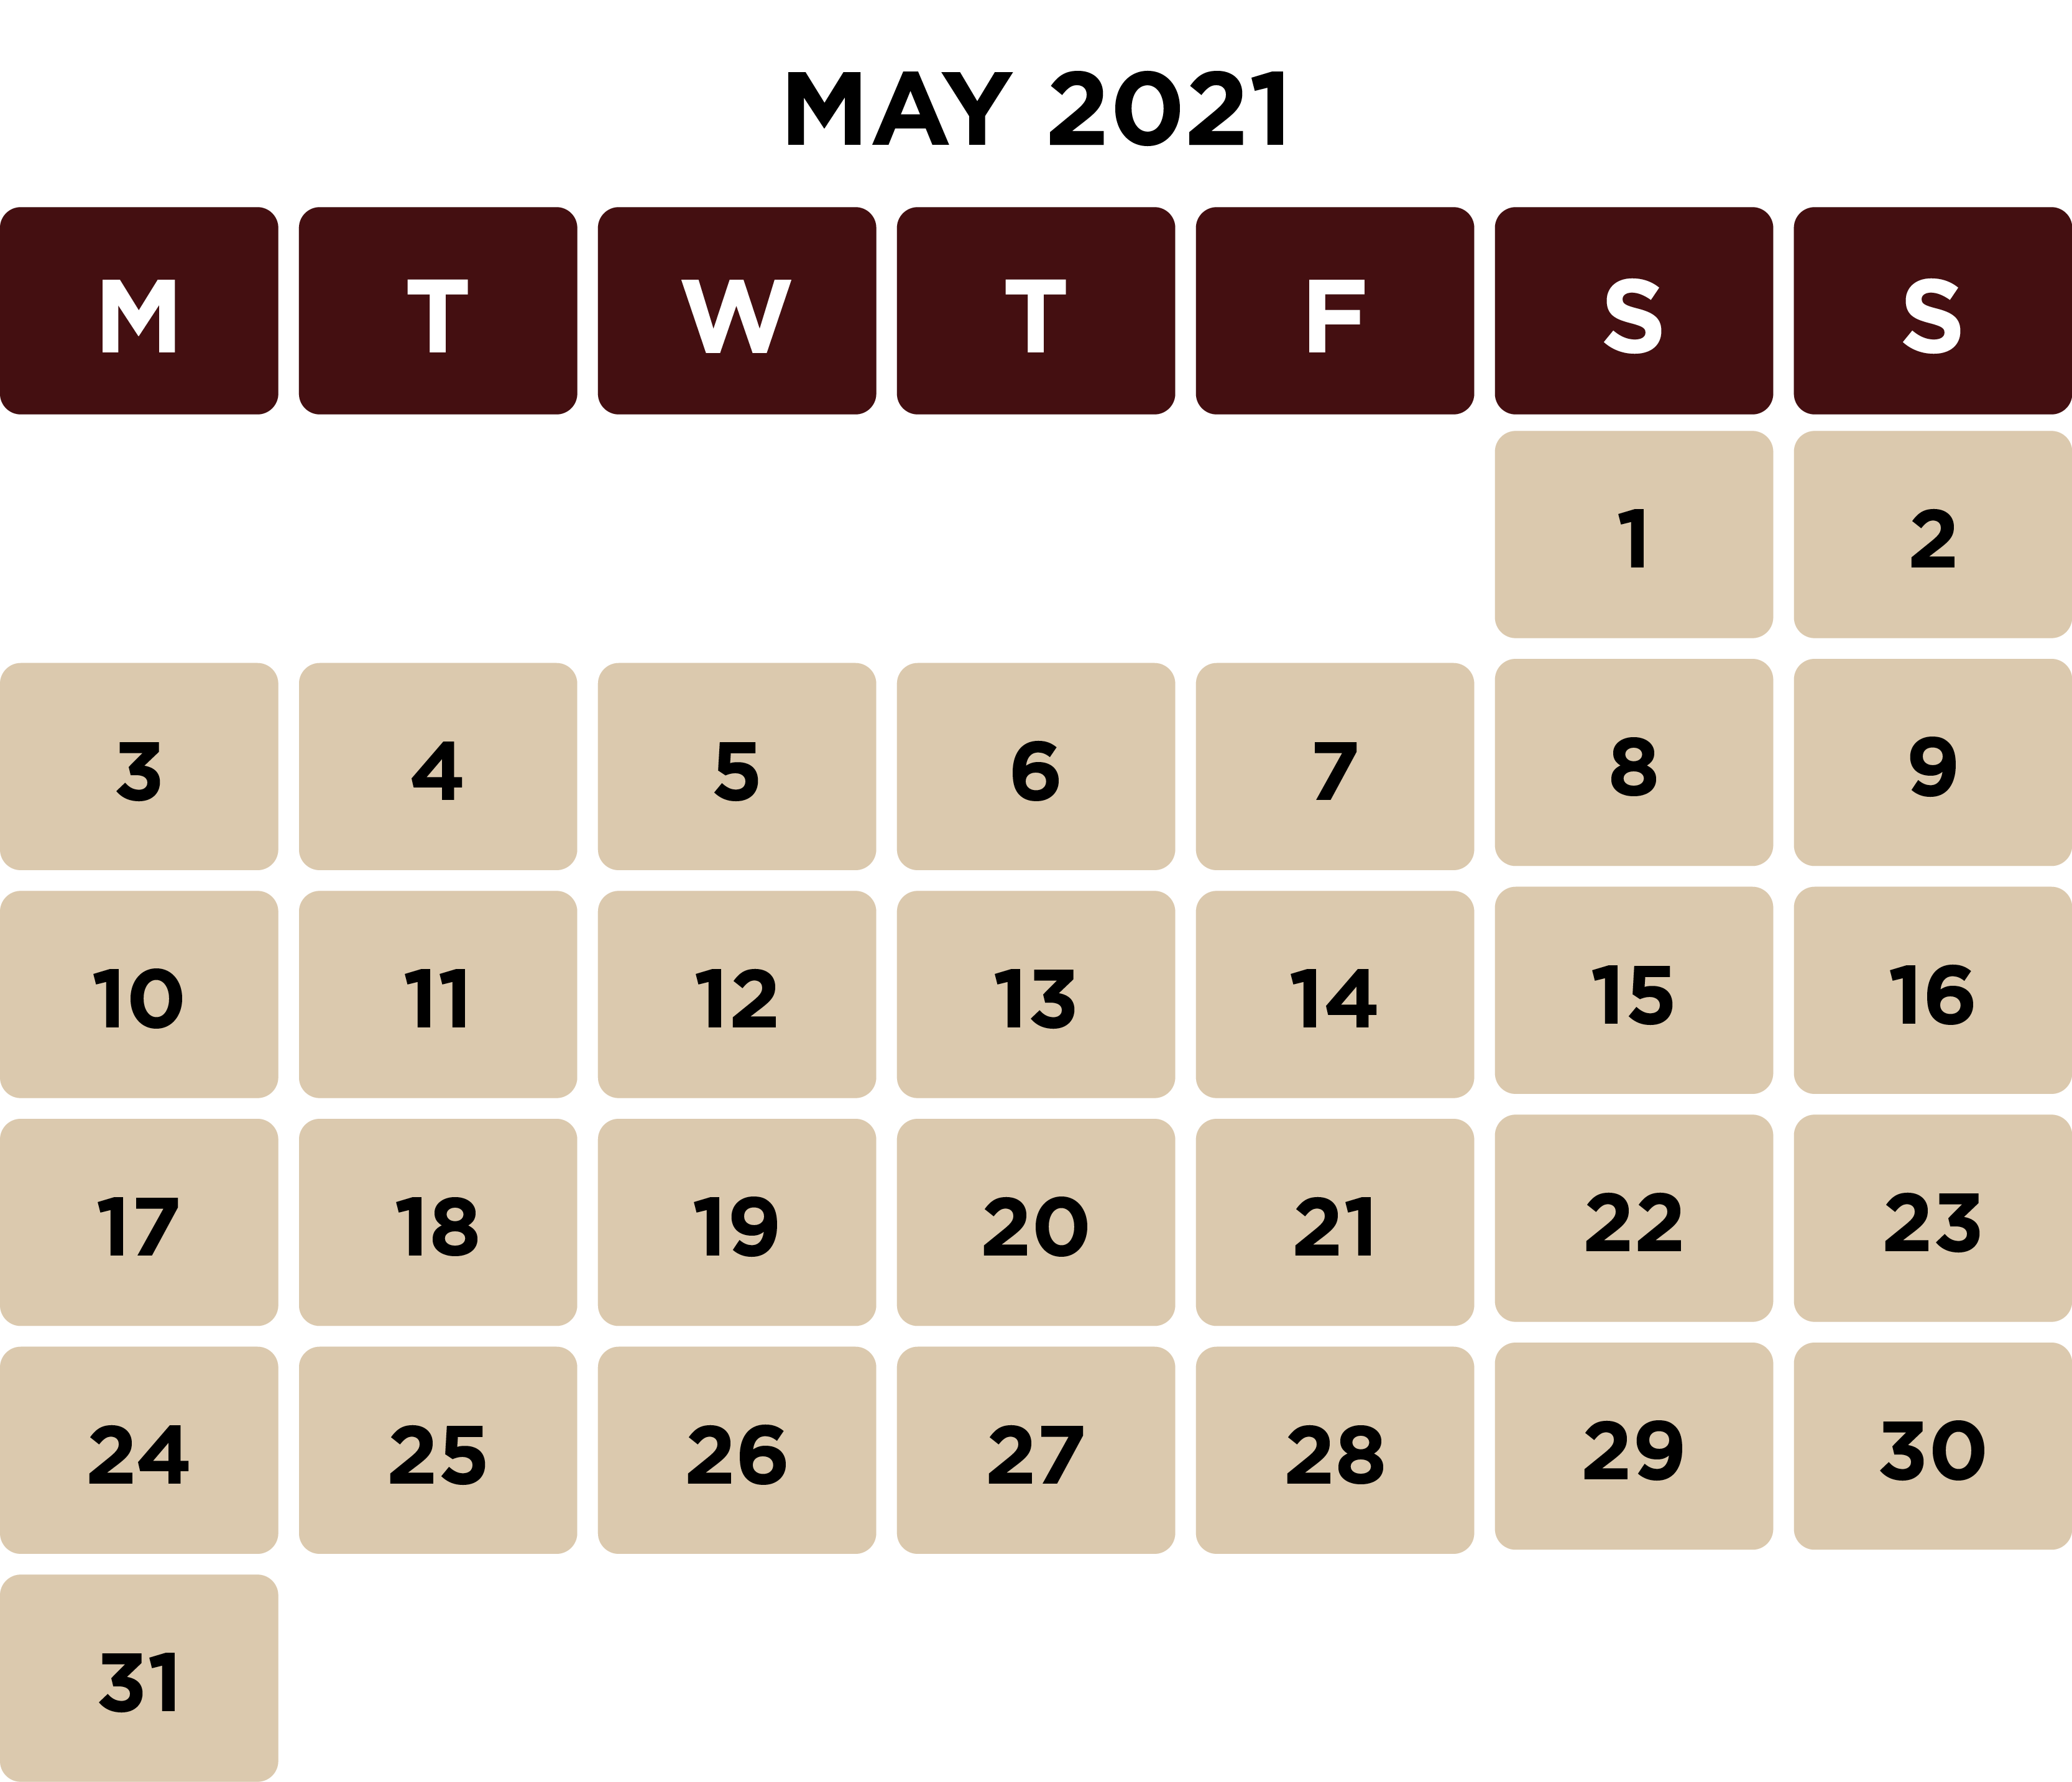 LNER1078 East Coast Upgrade 2020-21 Dates - Web Graphic Month Supply 800x688px - 07 May 2021.png